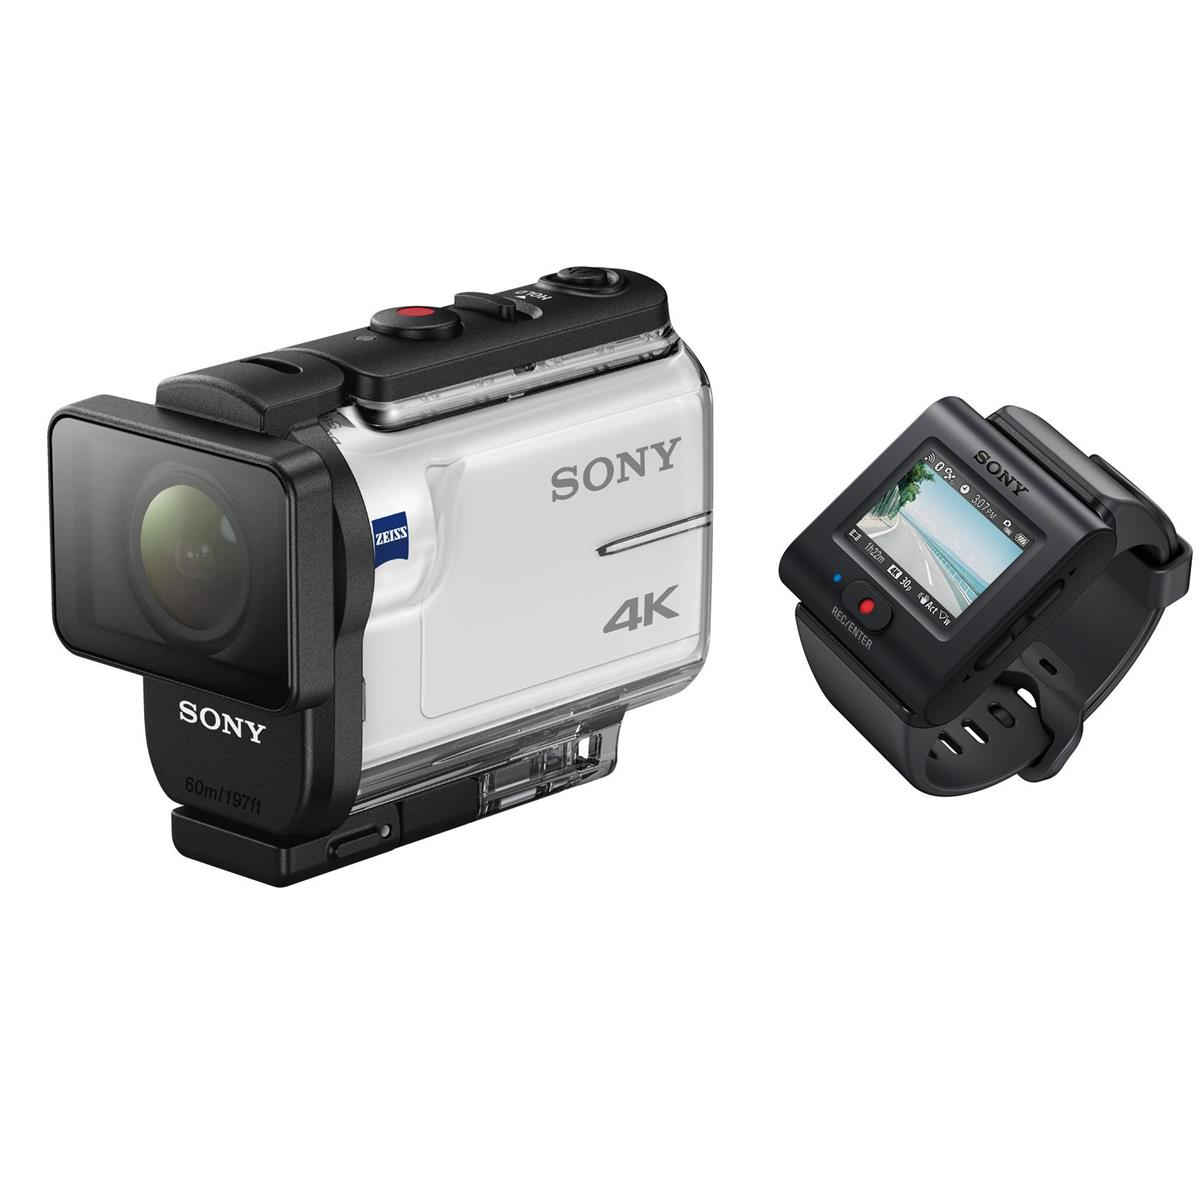 Sony 4K Action Cam with LIVE VIEW remote-  this package comes with a live view display that you wear on your wrist that connects via Wifi to your Sony Action Cam.  This solves the problem of just wondering how you're going to compose your shot.  It's also highly beneficial for changing your shot on the go vs. looking a the back of a small screen on the camera like you have on a GoPro...and it drains far less on battery life of the camera as well compared to a screen.